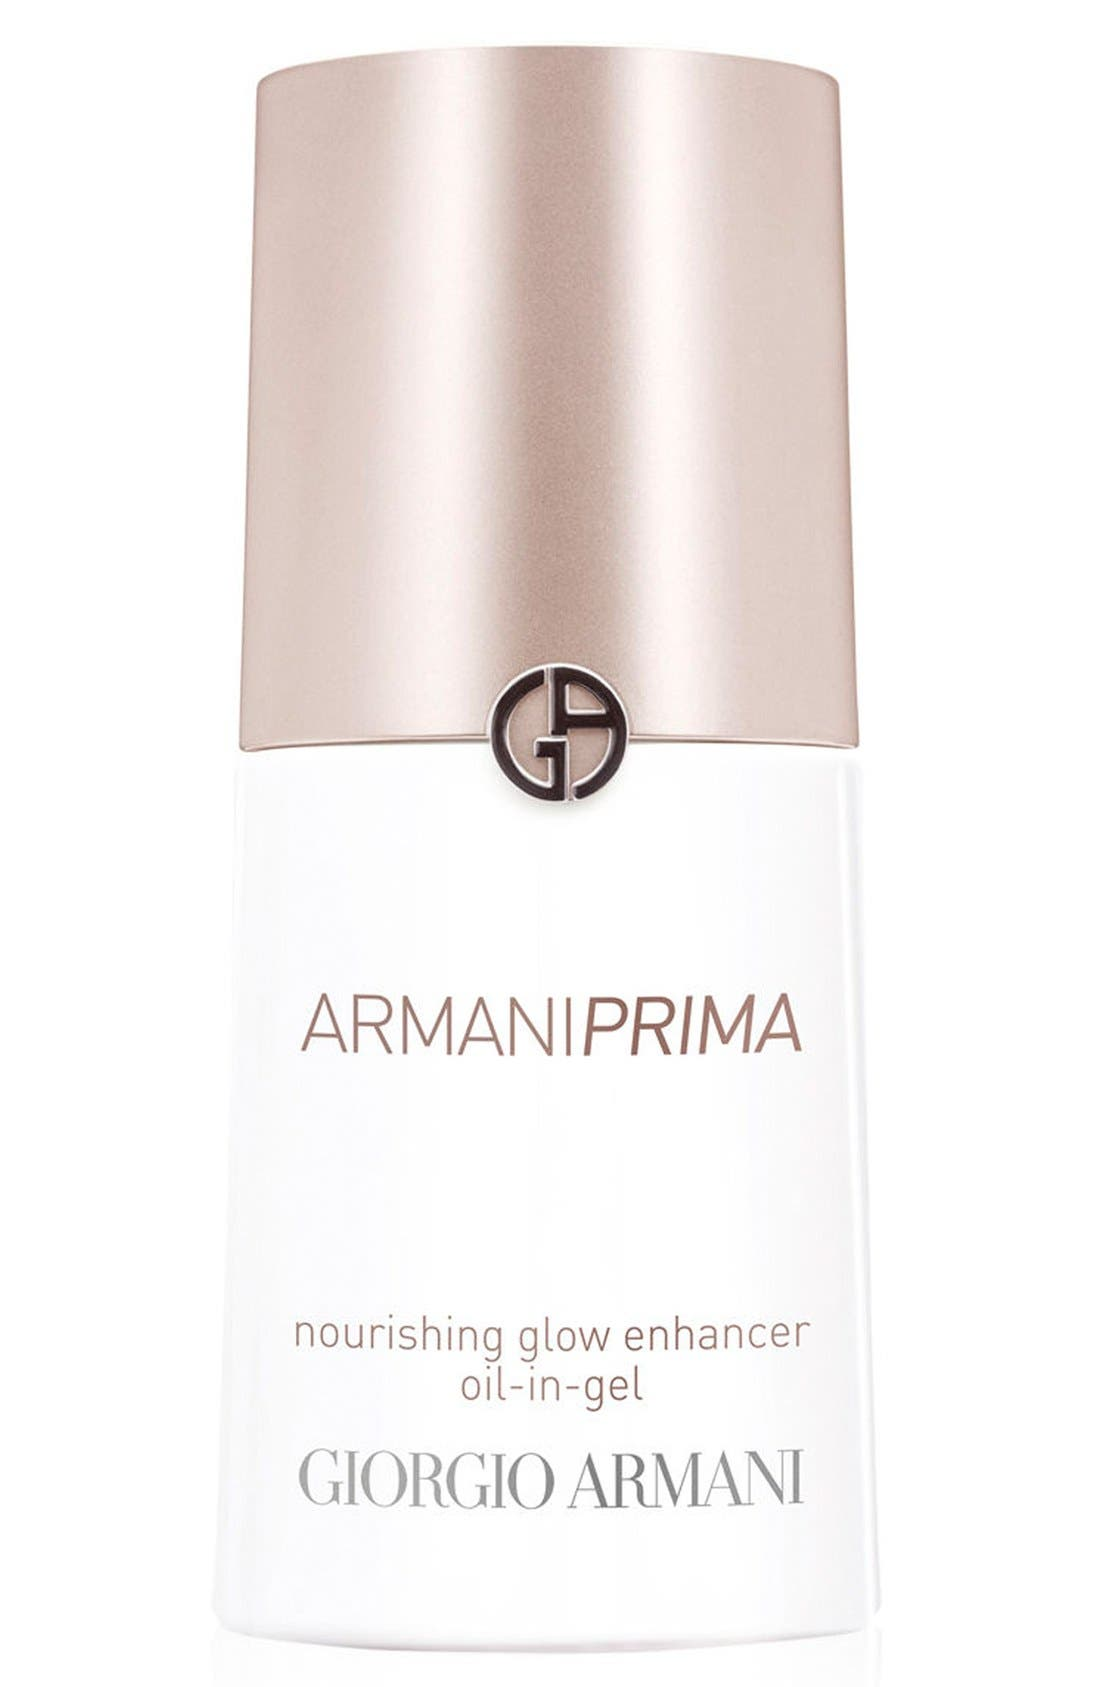 Giorgio Armani 'Prima' Nourishing Glow Enhancer Oil-in-Gel